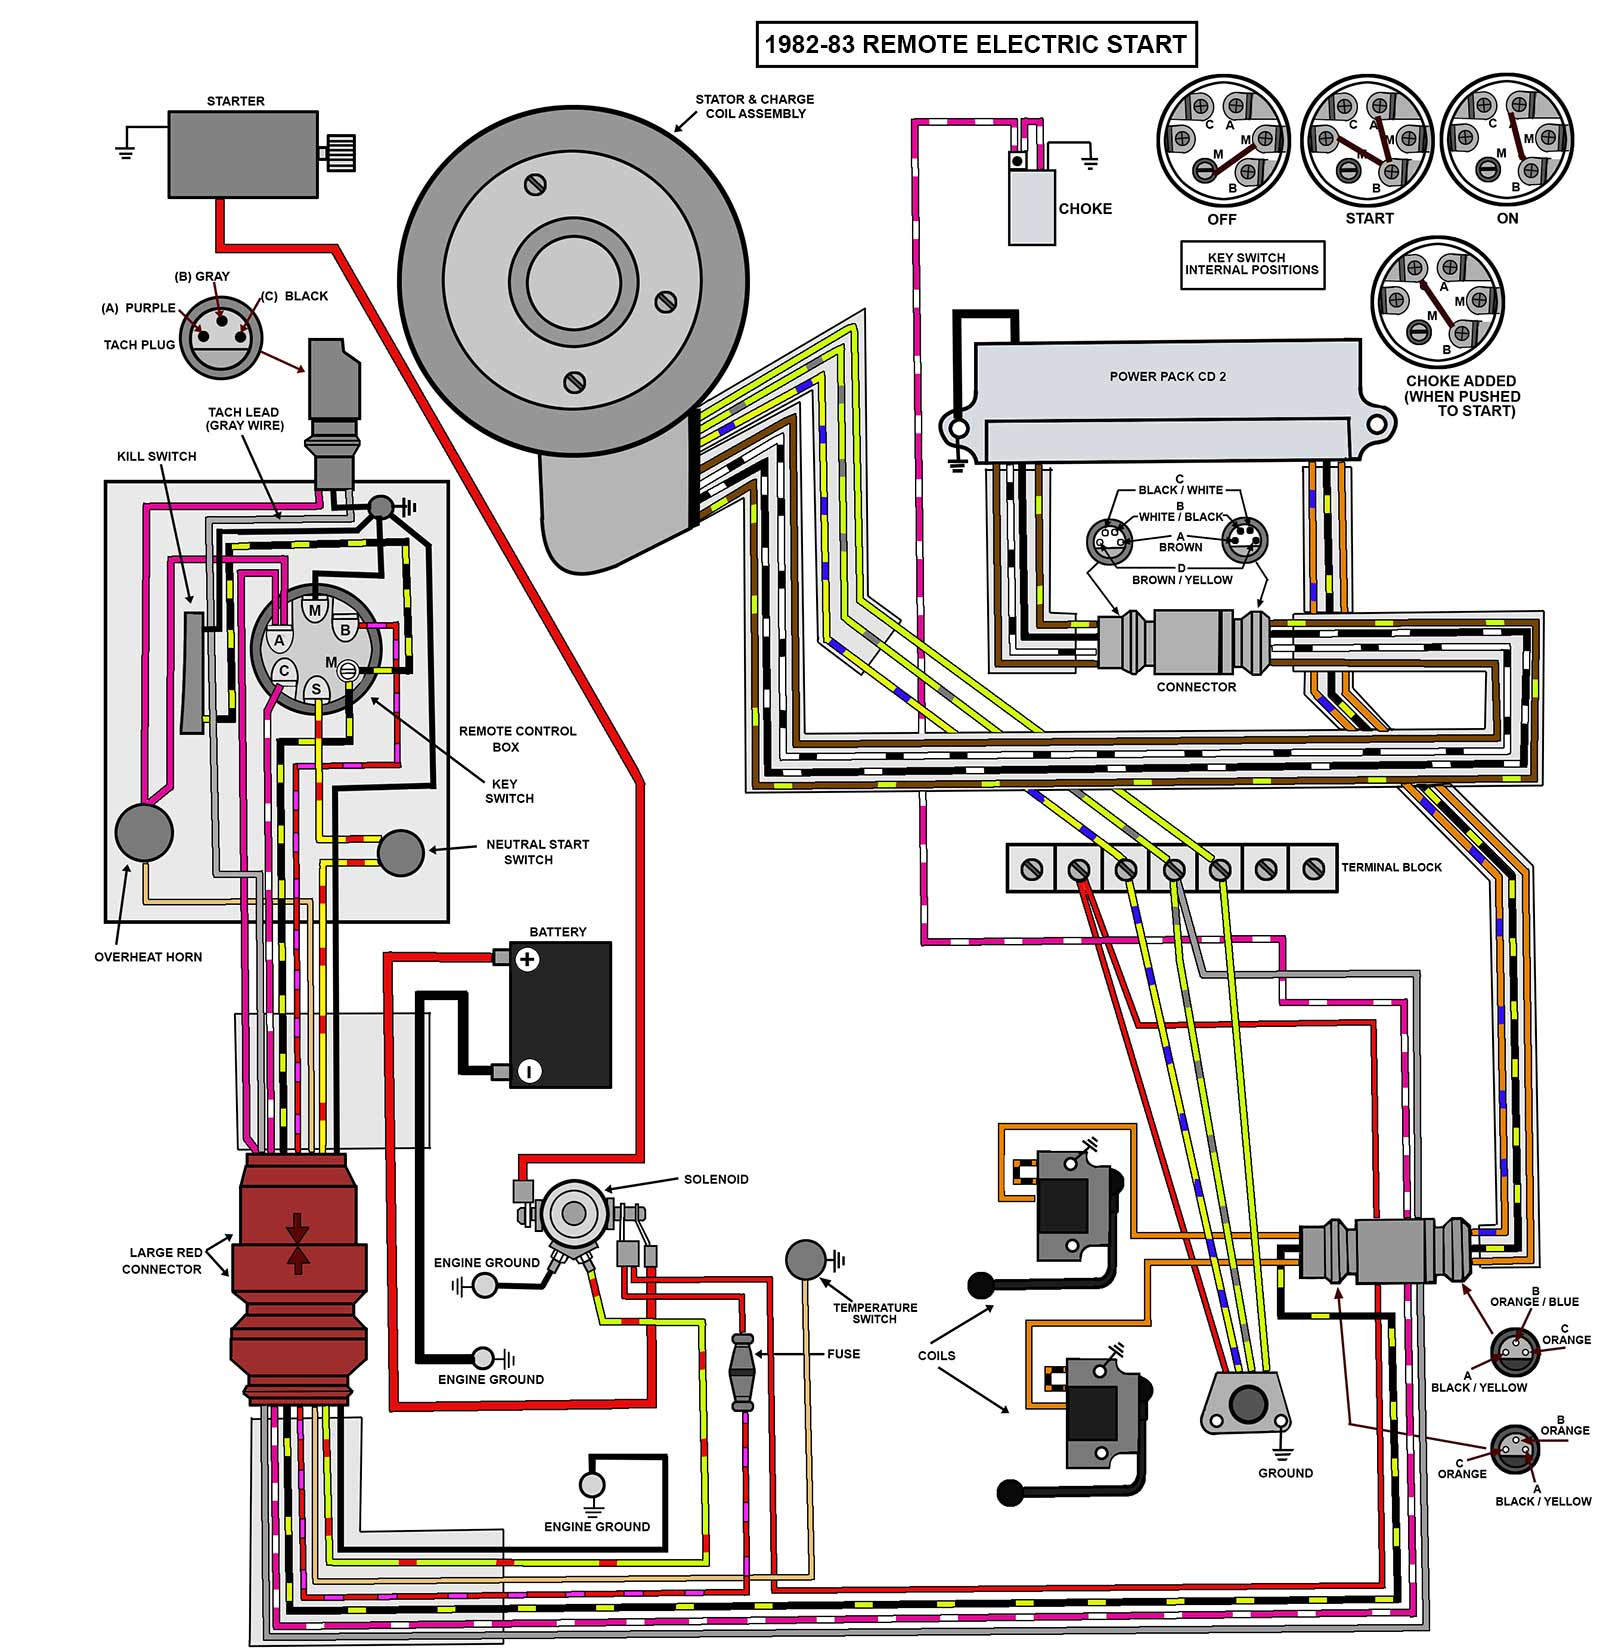 25_35_82 83_elec remote hp wiring diagram wiring harness diagram \u2022 wiring diagrams j johnson outboard wiring schematic at webbmarketing.co